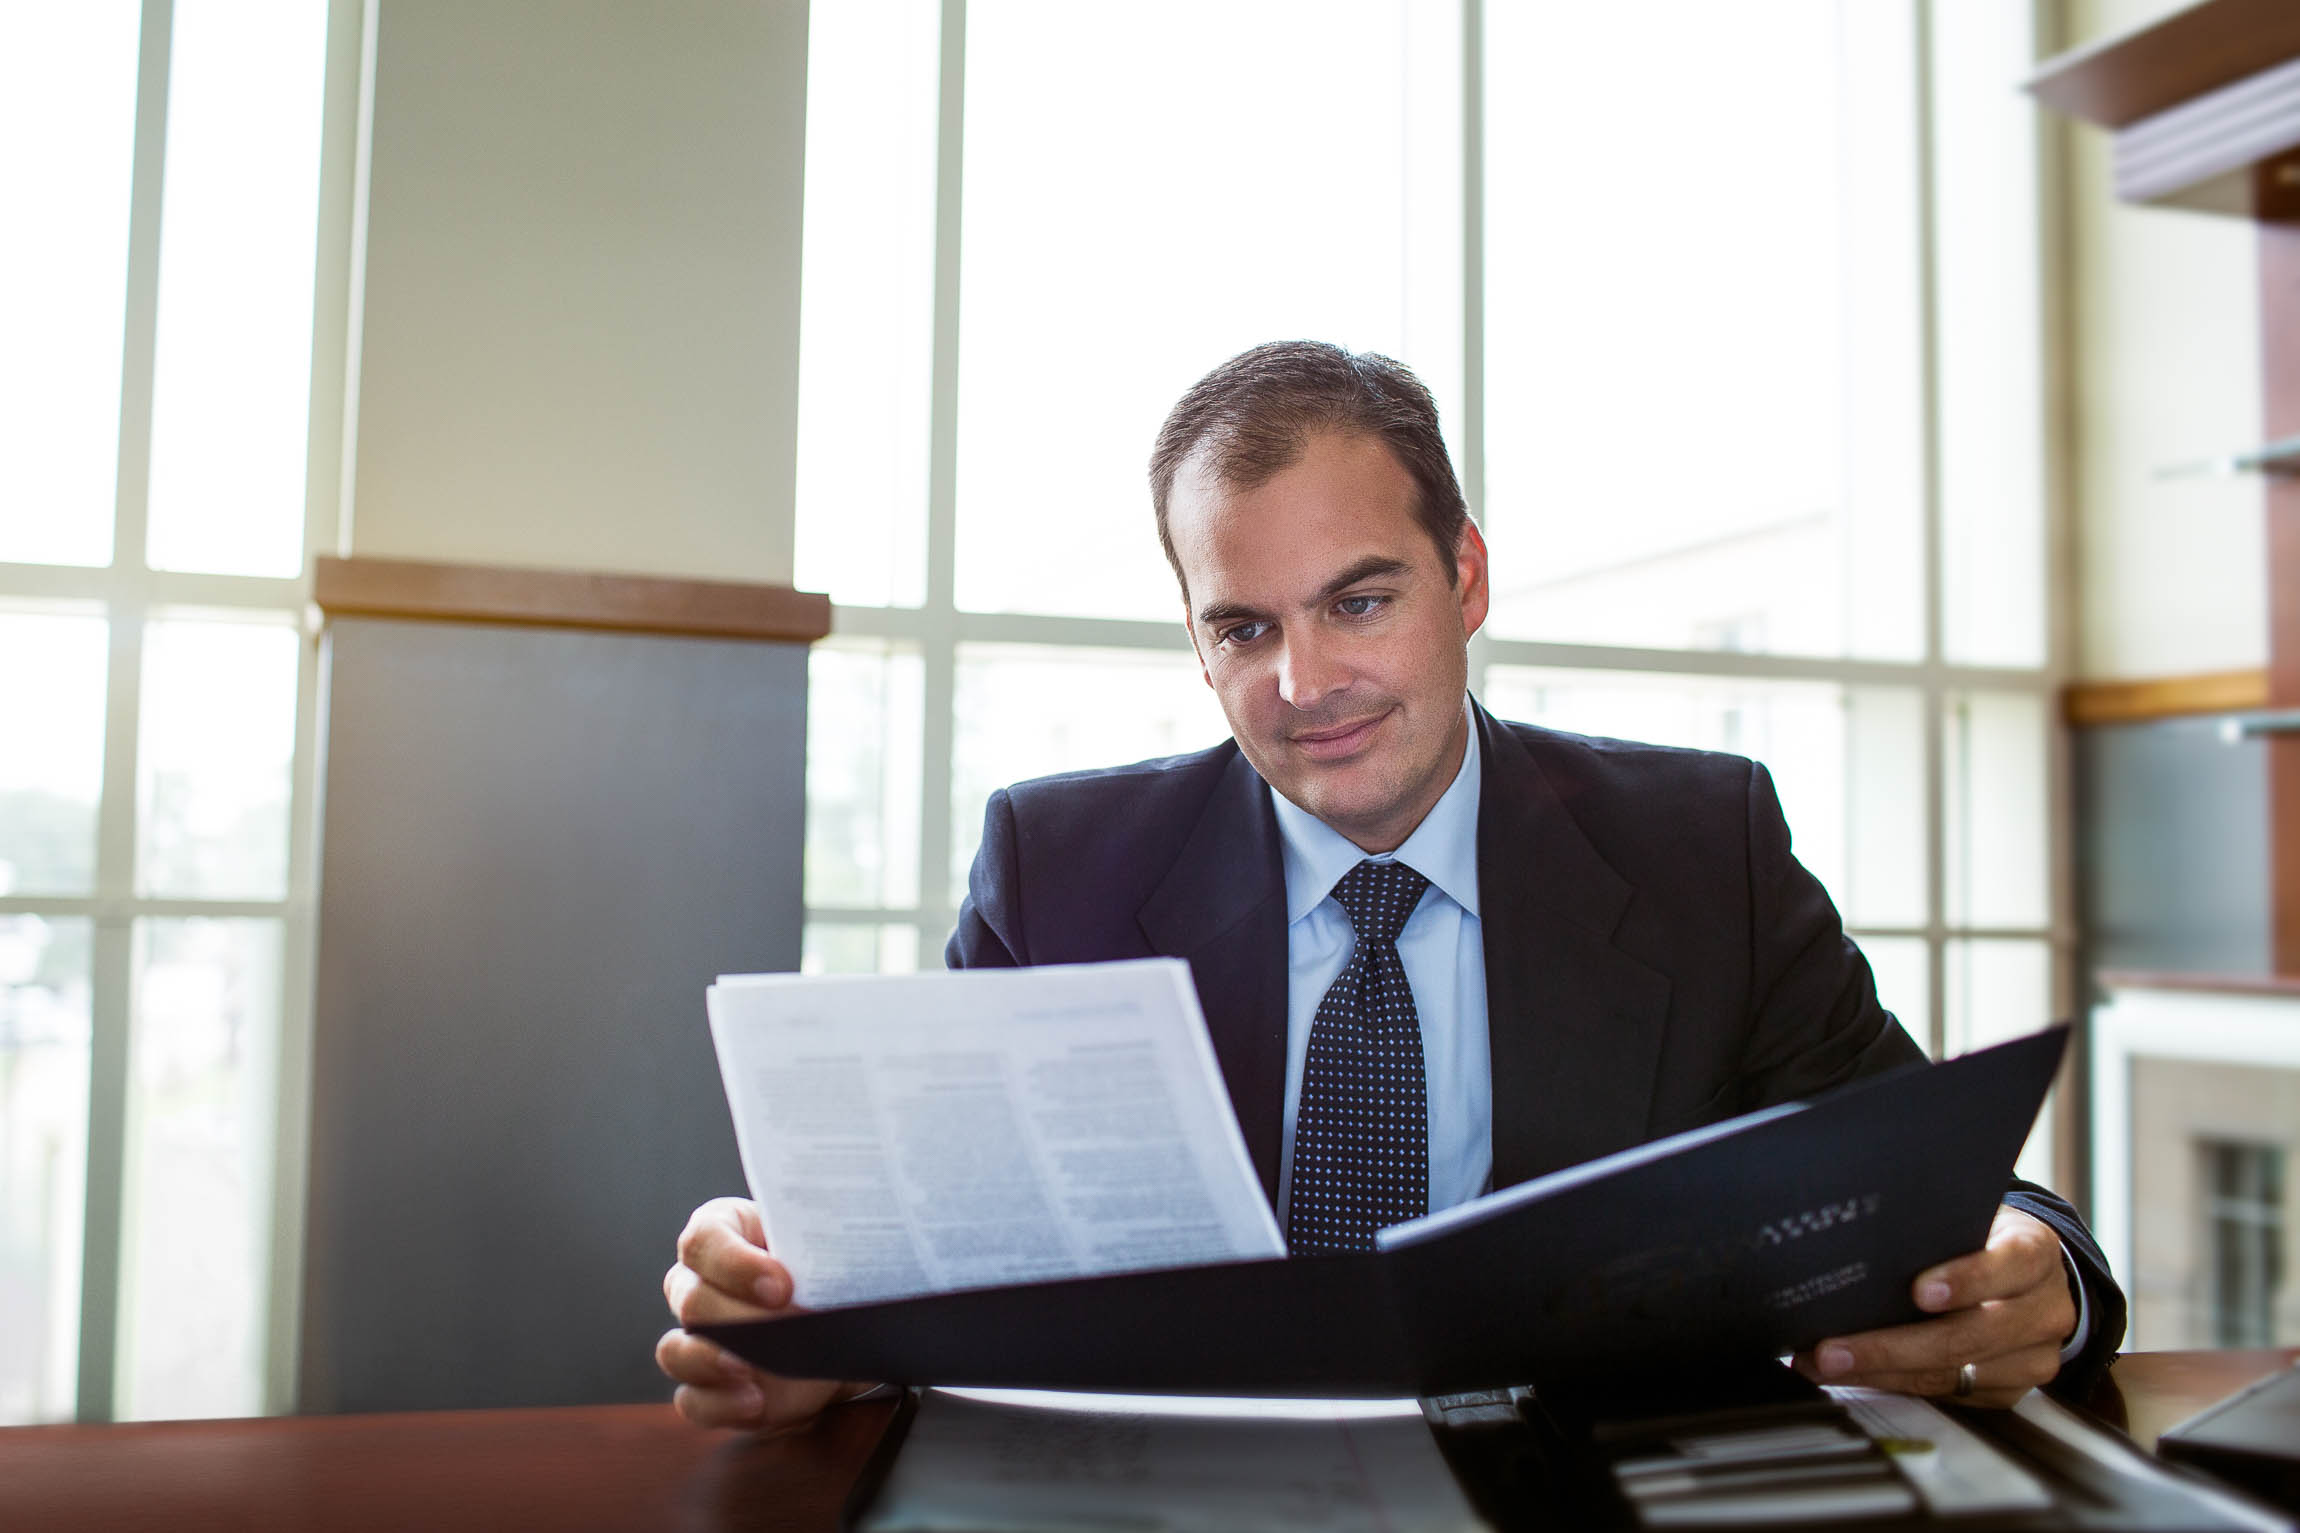 Atlanta Lawyer Reviewing a Document While Photographed